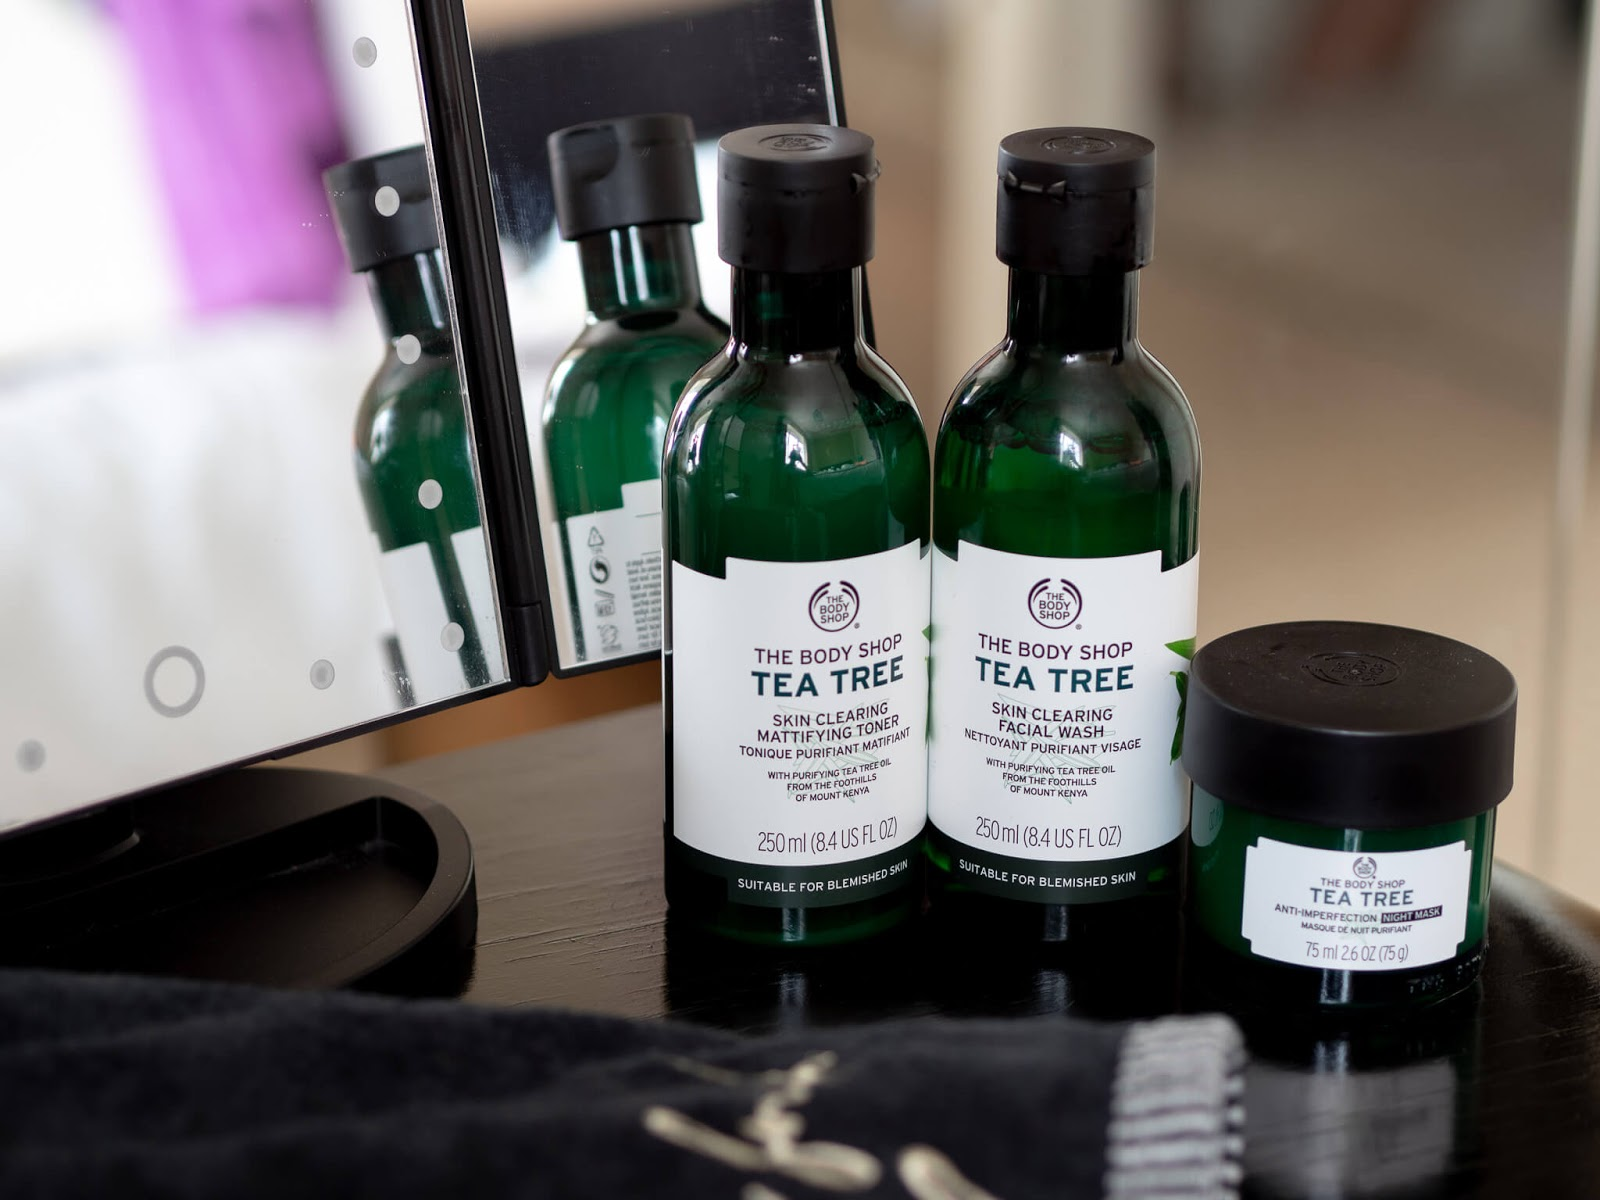 The Body Shop Tea Tree products reviewed